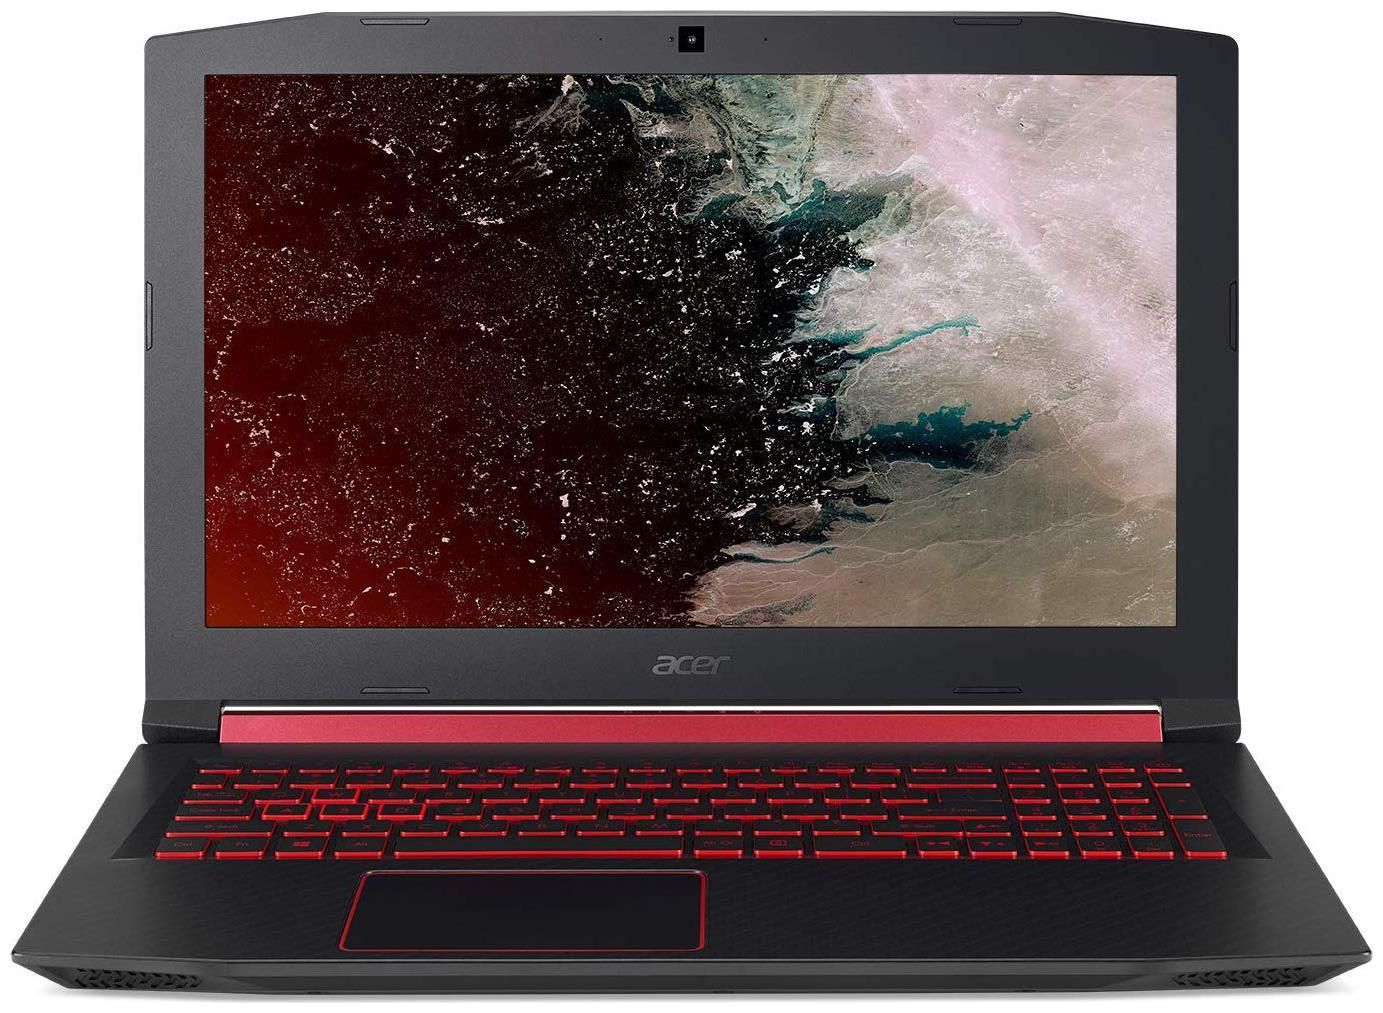 Acer Nitro 5 An515 52 Core I5 8th Gen 8 Gb Ram 1 Tb Hdd Windows